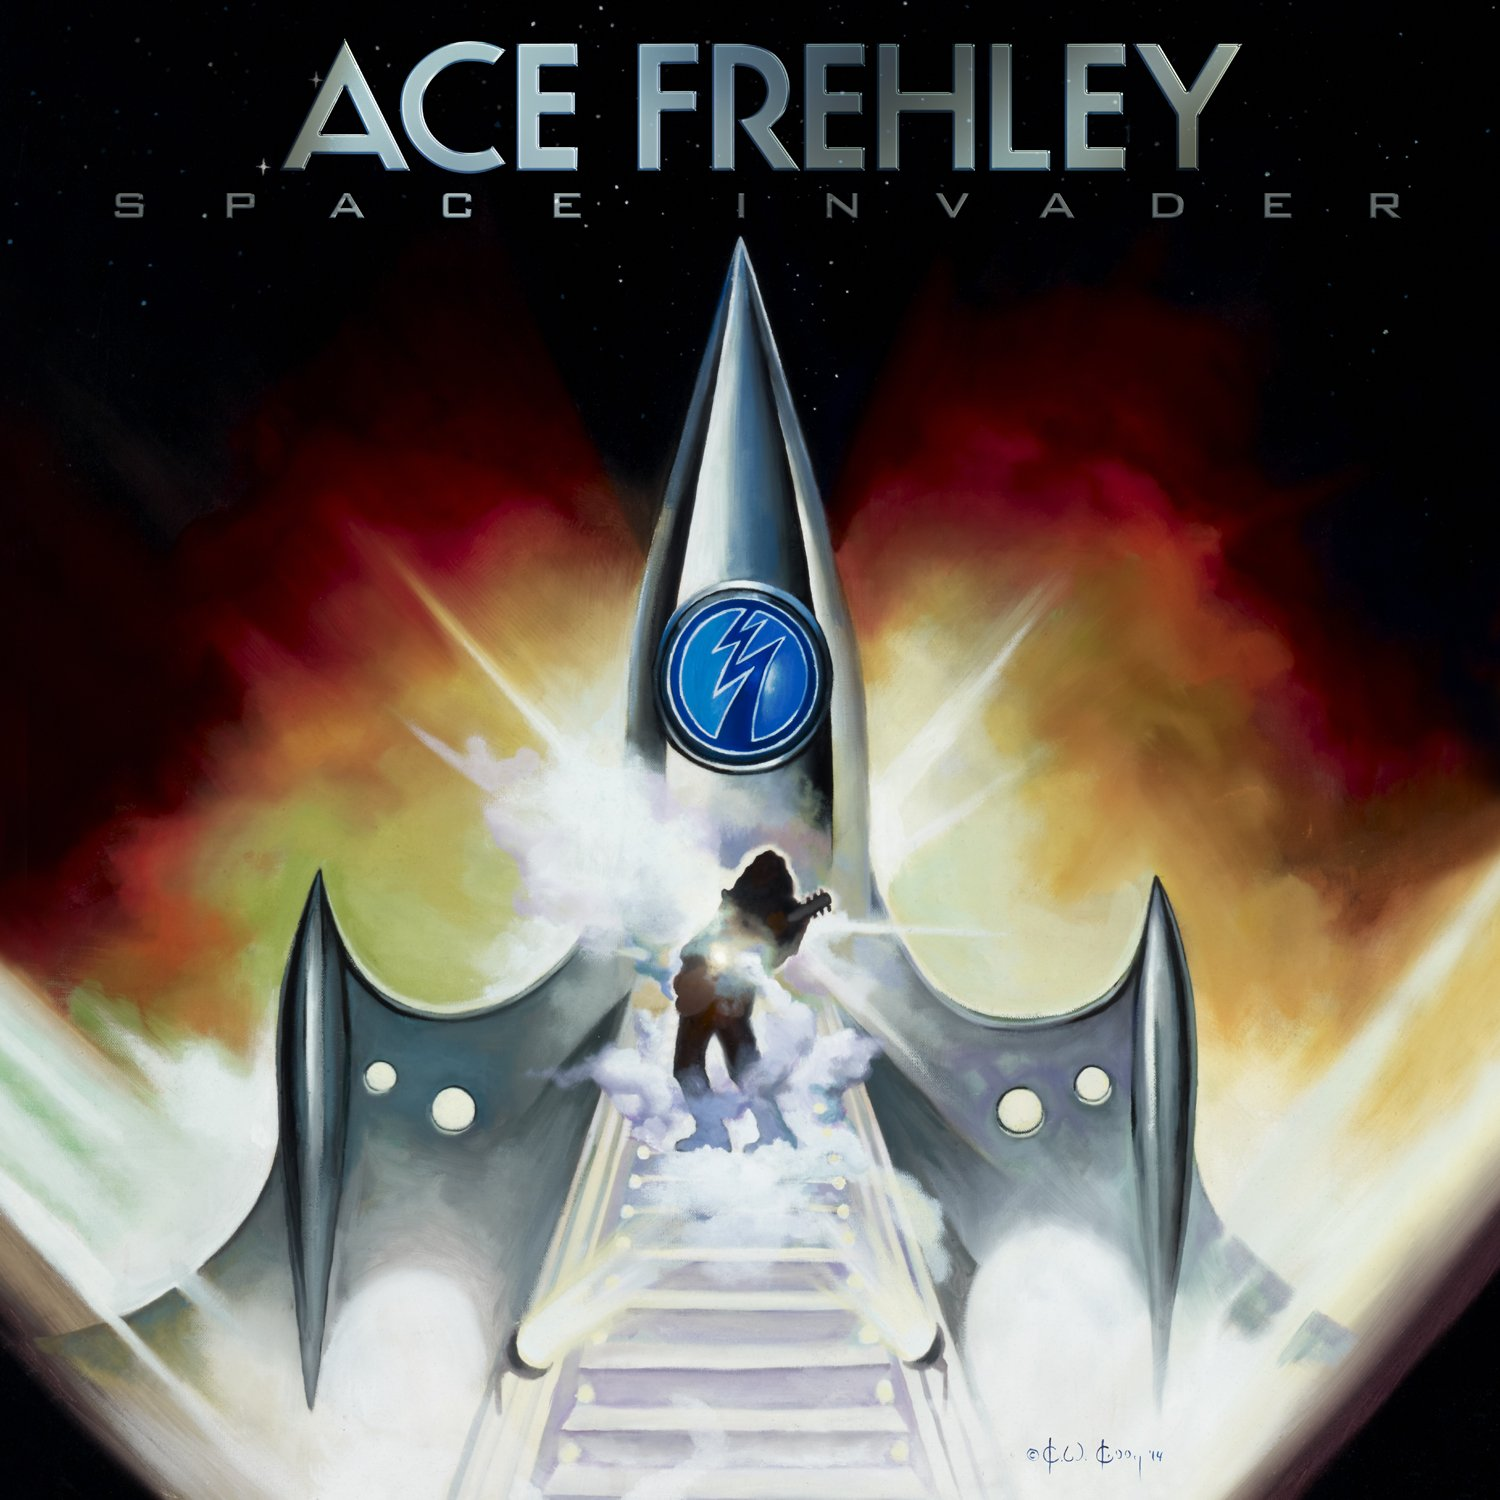 CD : Ace Frehley - Space Invader (CD)